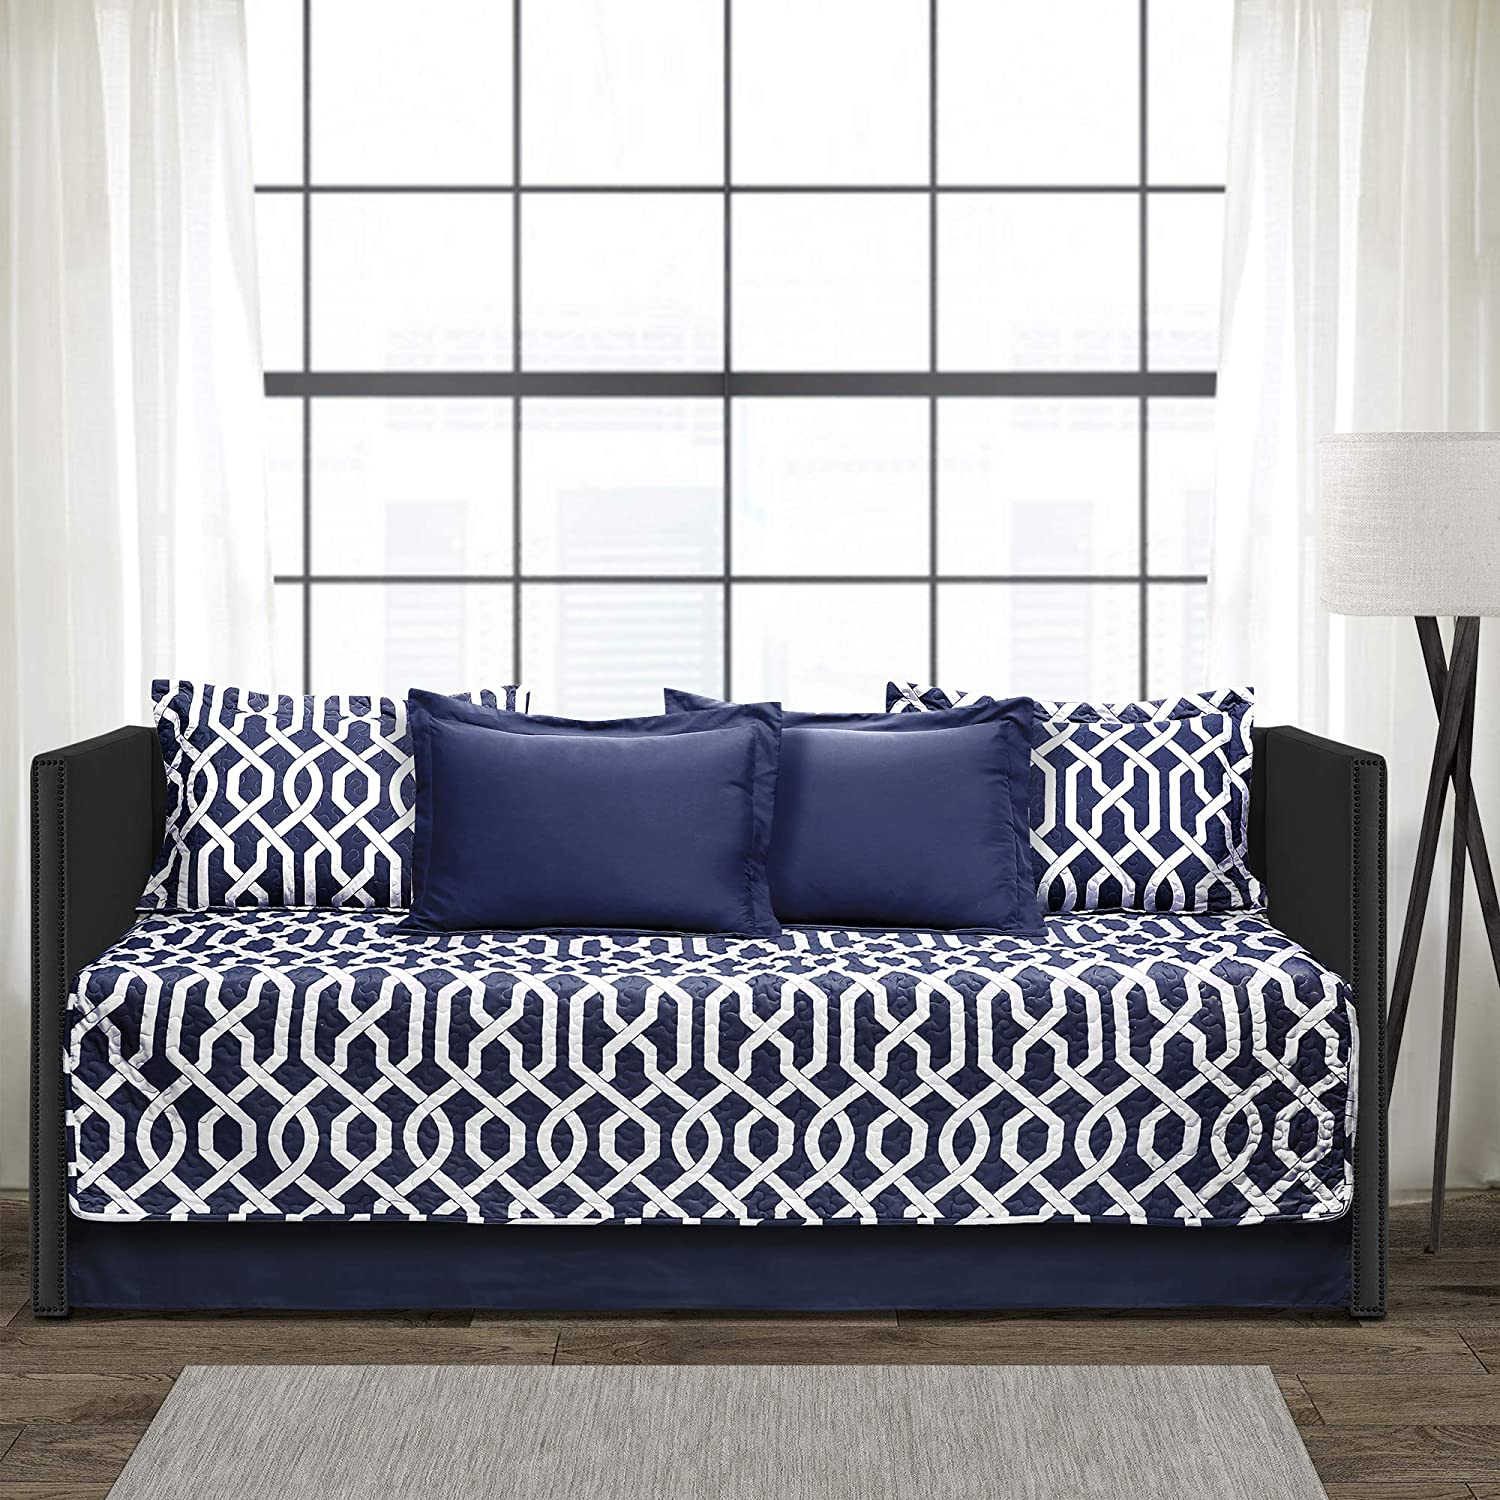 "Lush Decor Edward Trellis Patterned 6 Piece Daybed Cover Set Includes Bed Skirt, Pillow Shams and Cases, 75"" X 39"" Navy and White"